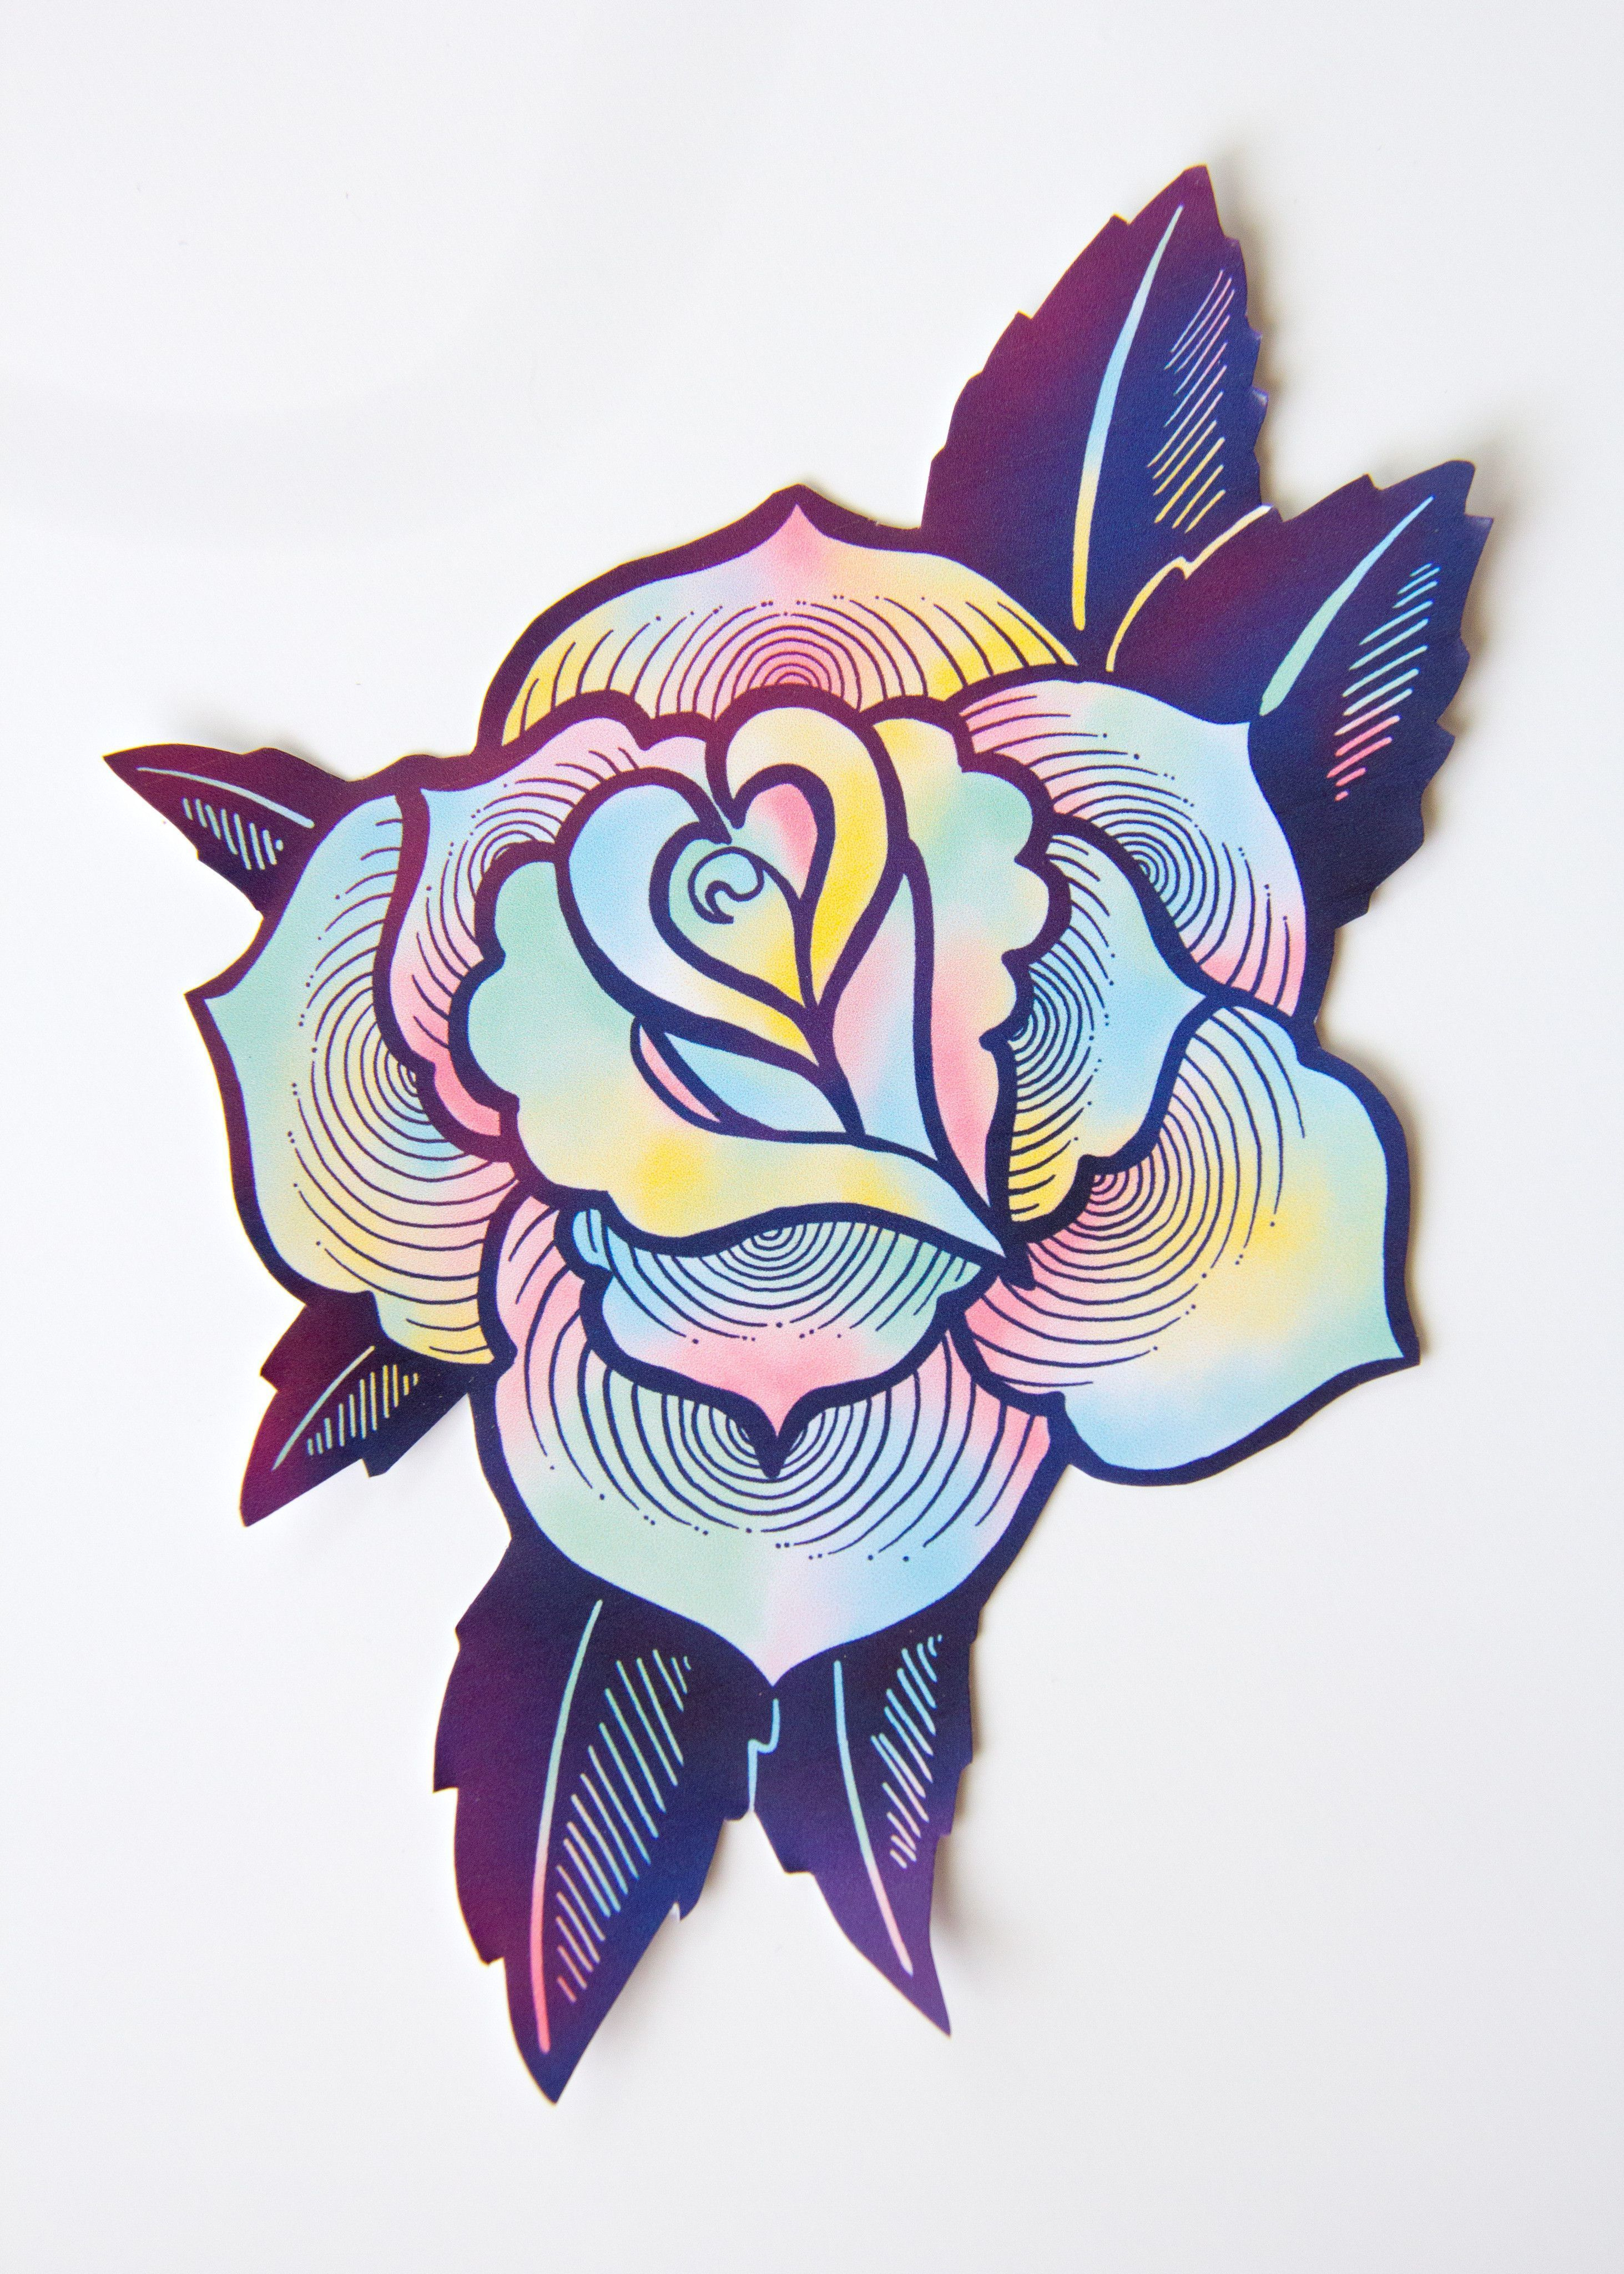 2926x4096 Tattoos Rose Tattoo Drawing Cool Chicano Art Drawings Roses Rose